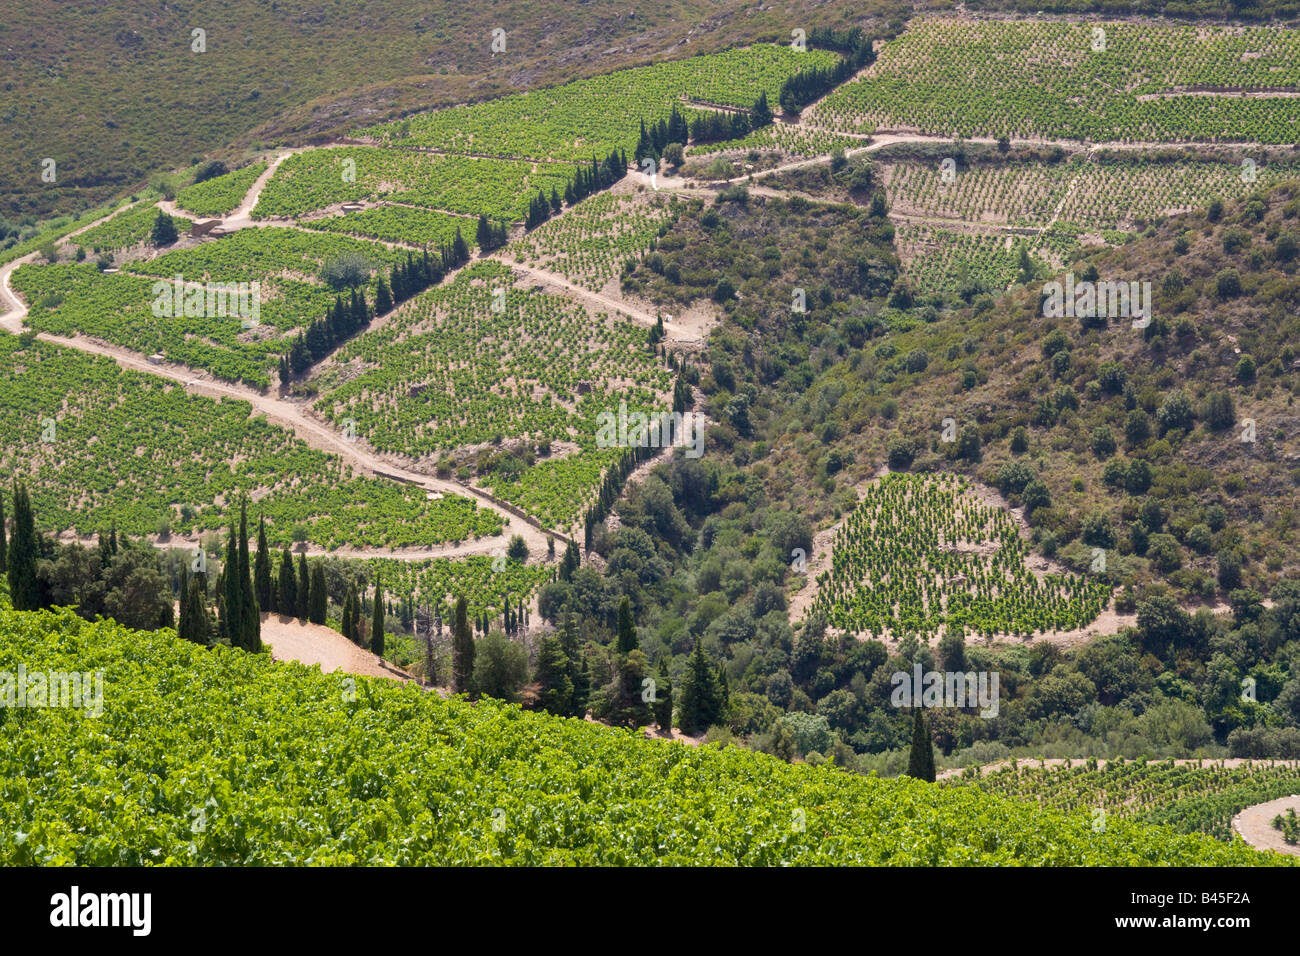 Vineyards at Collioure in the back country of the mediterranean Cote Vermeille / Southern France - Stock Image